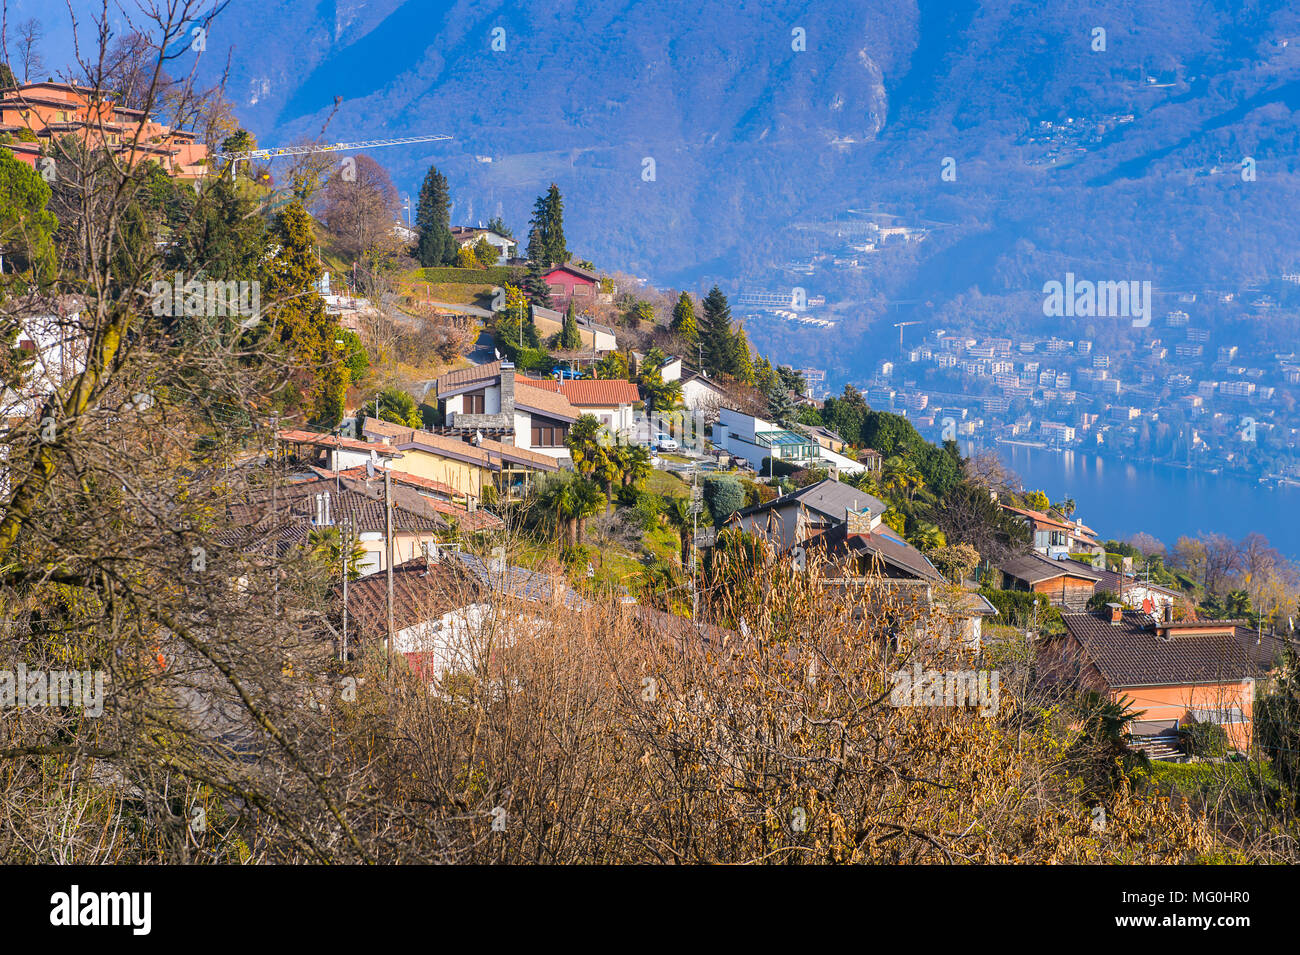 Lugano Old Town Stock Photos Lugano Old Town Stock Images Alamy